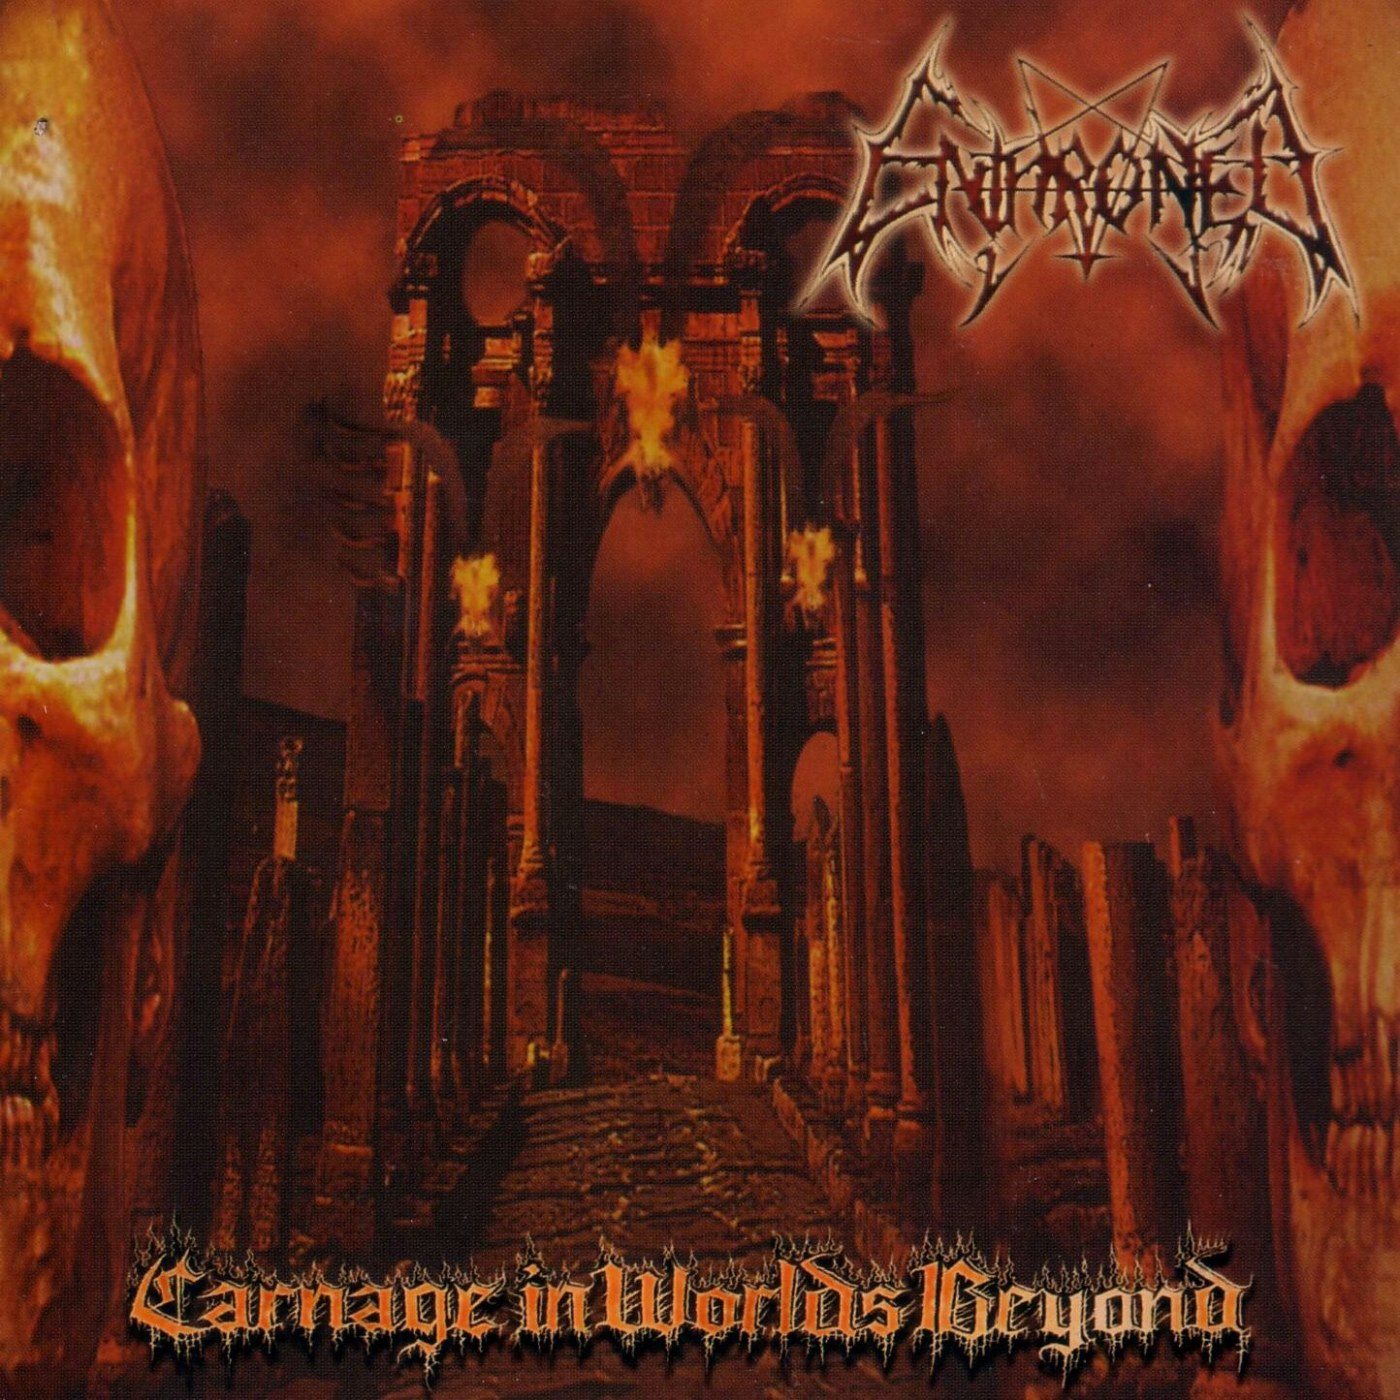 Review for Enthroned - Carnage in Worlds Beyond